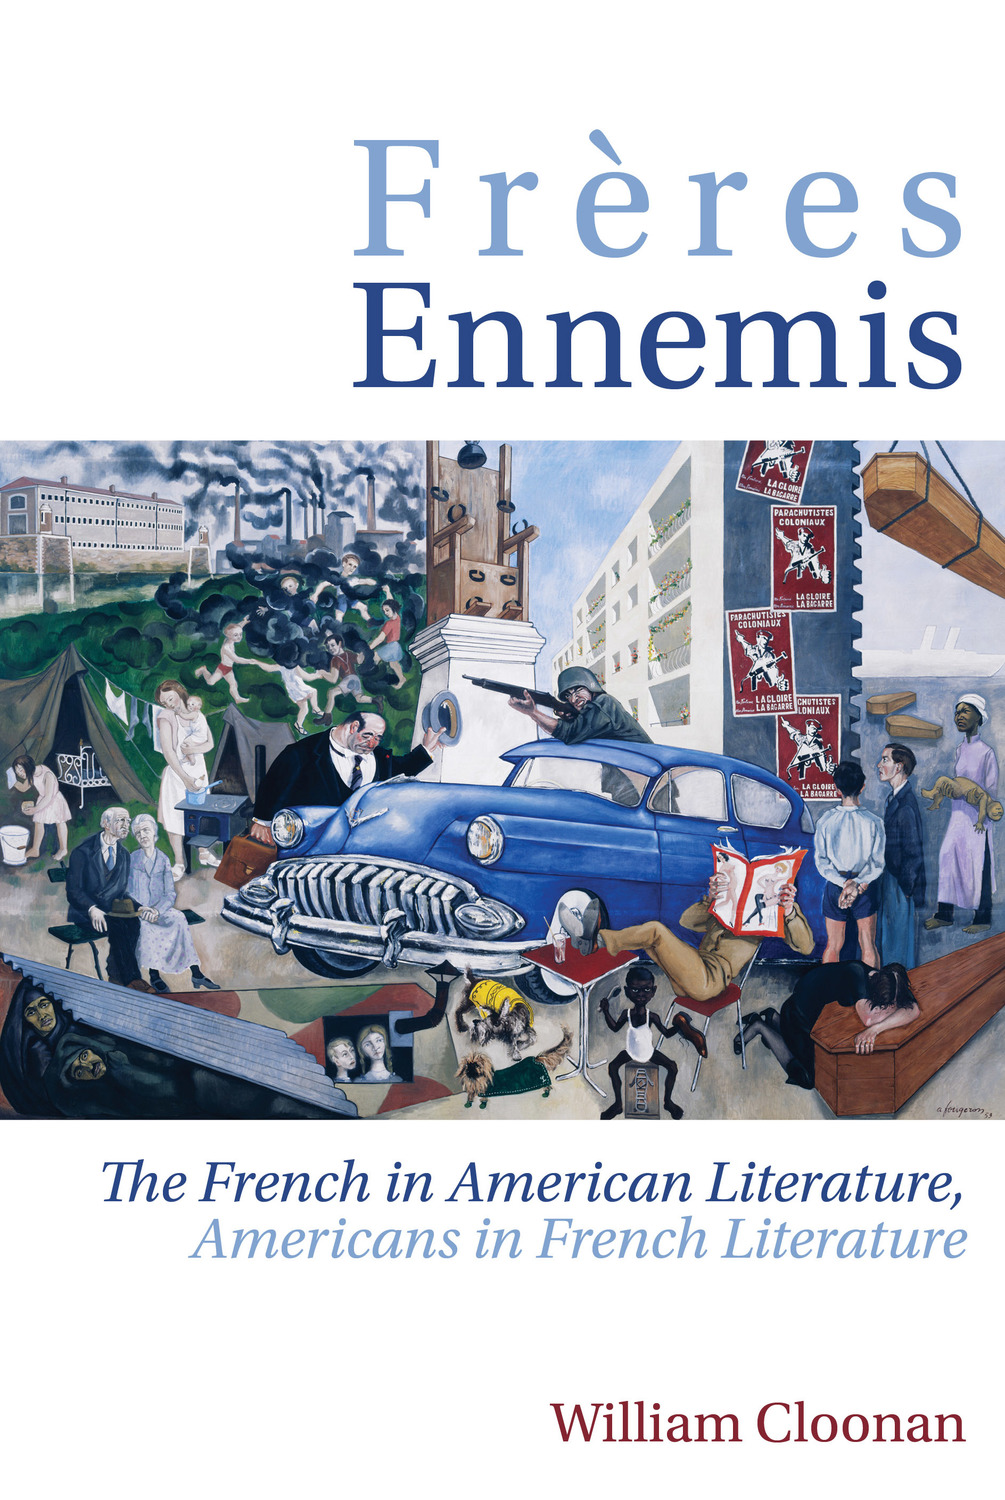 W.Cloonan, Frères Ennemis. The French in American Literature, Americans in French Literature